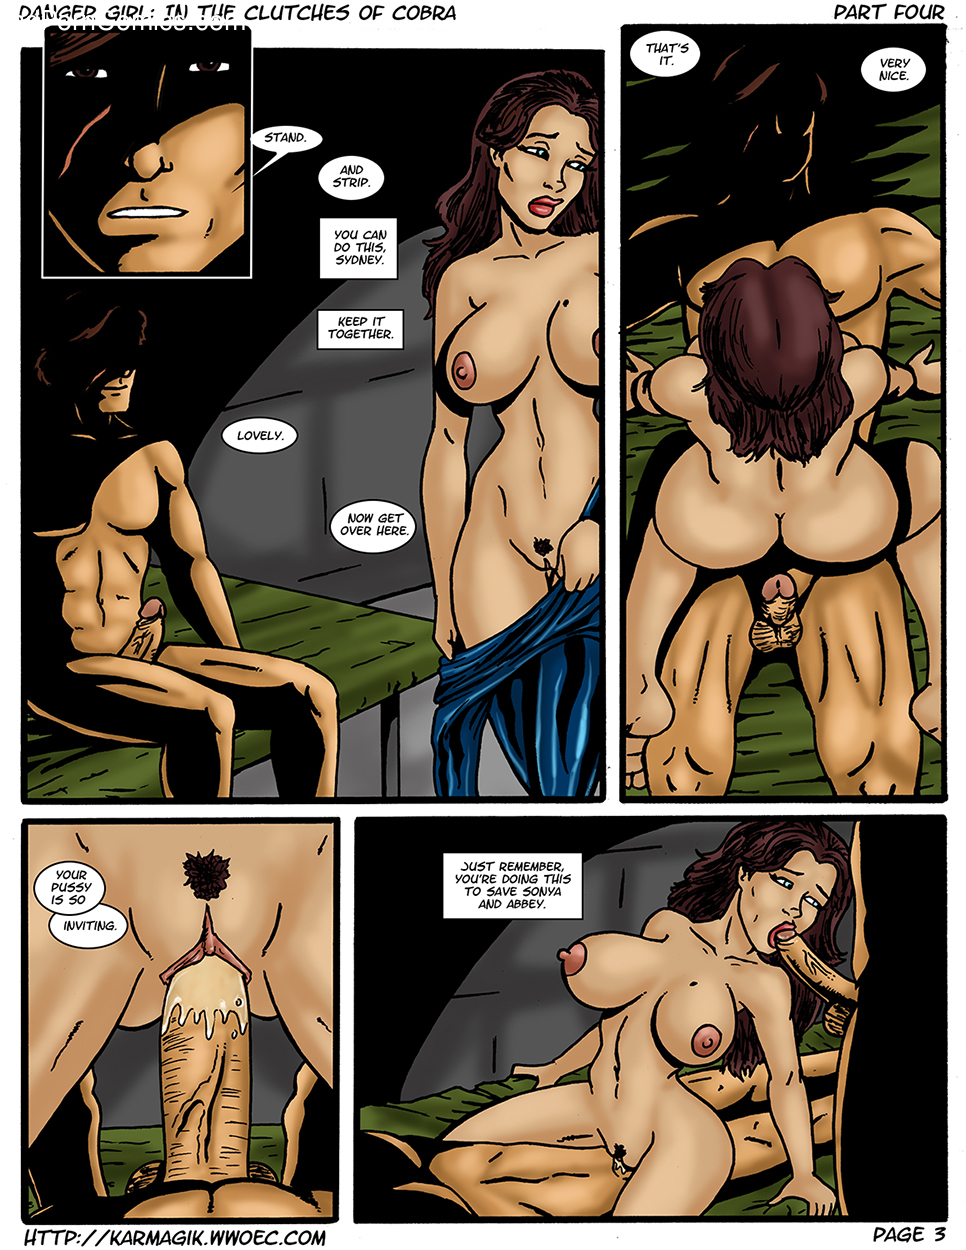 Karmagik- Danger Girl In the Clutches of Cobra17 free sex comic